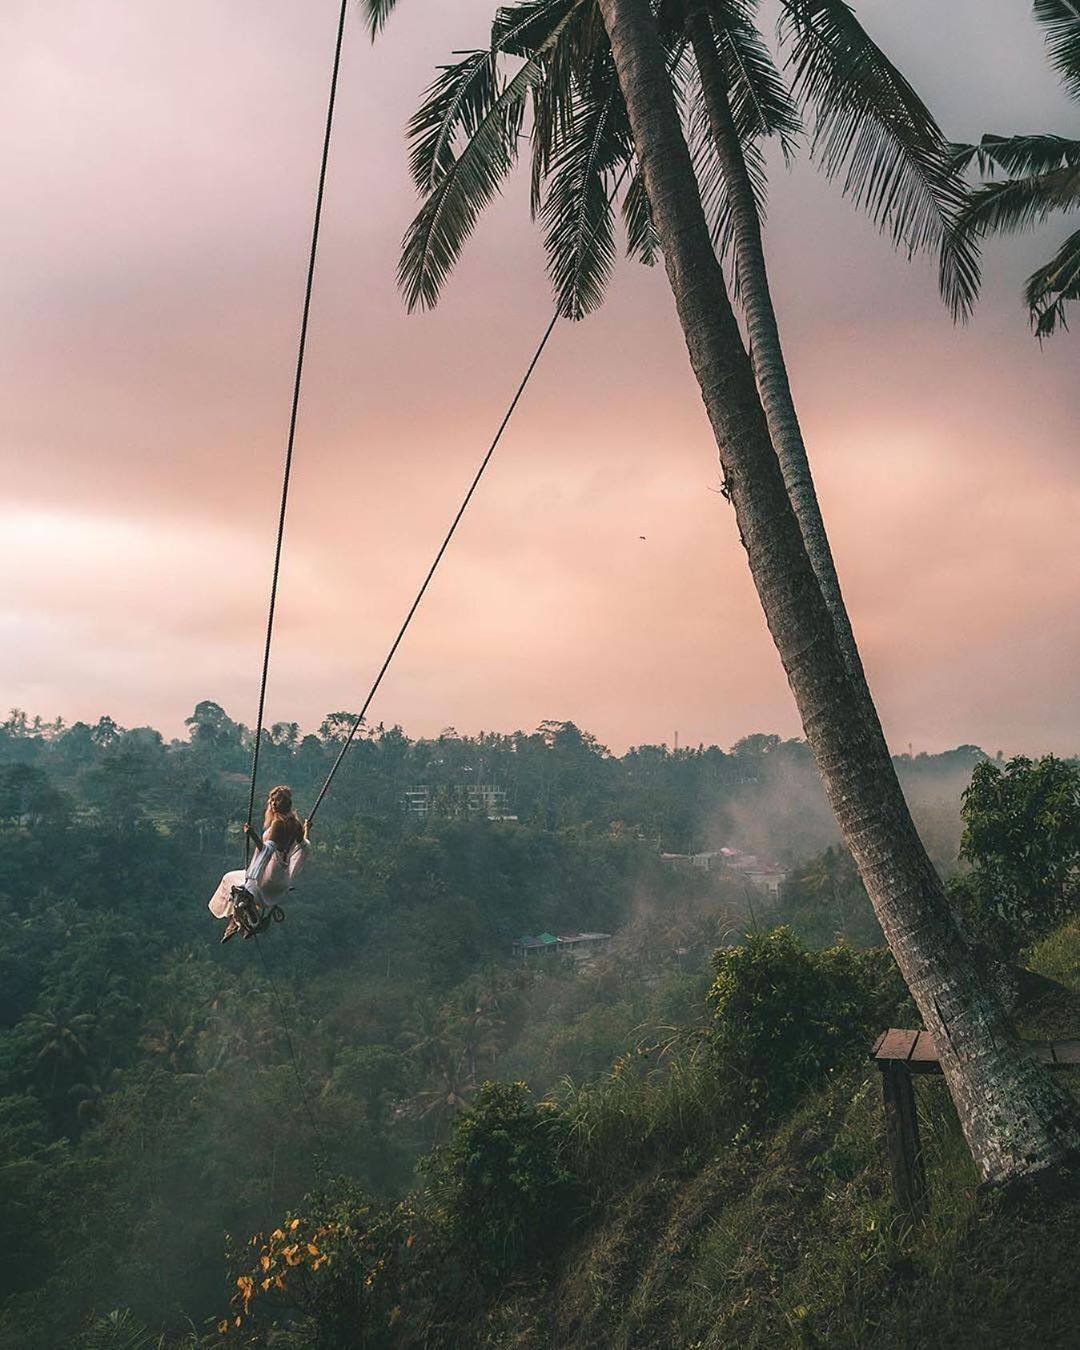 Bali Trip Explore Bali Beyond On Instagram Swing Over This Jungle Paradise And Play Like A Little Girl Here With Amazi Travel Bali Travel Travel Photography